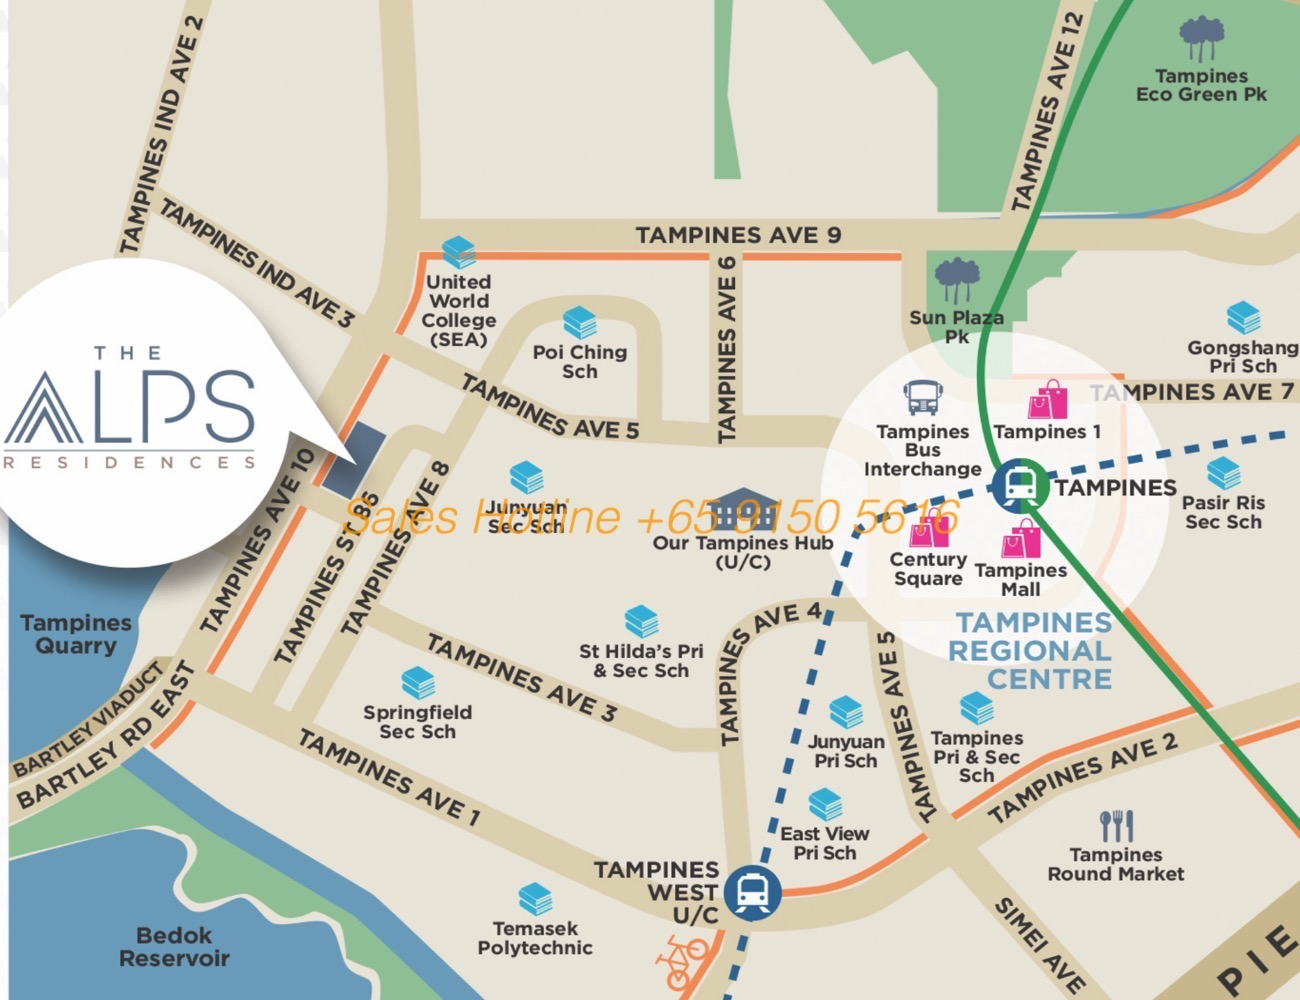 Alps Residences - Location Map